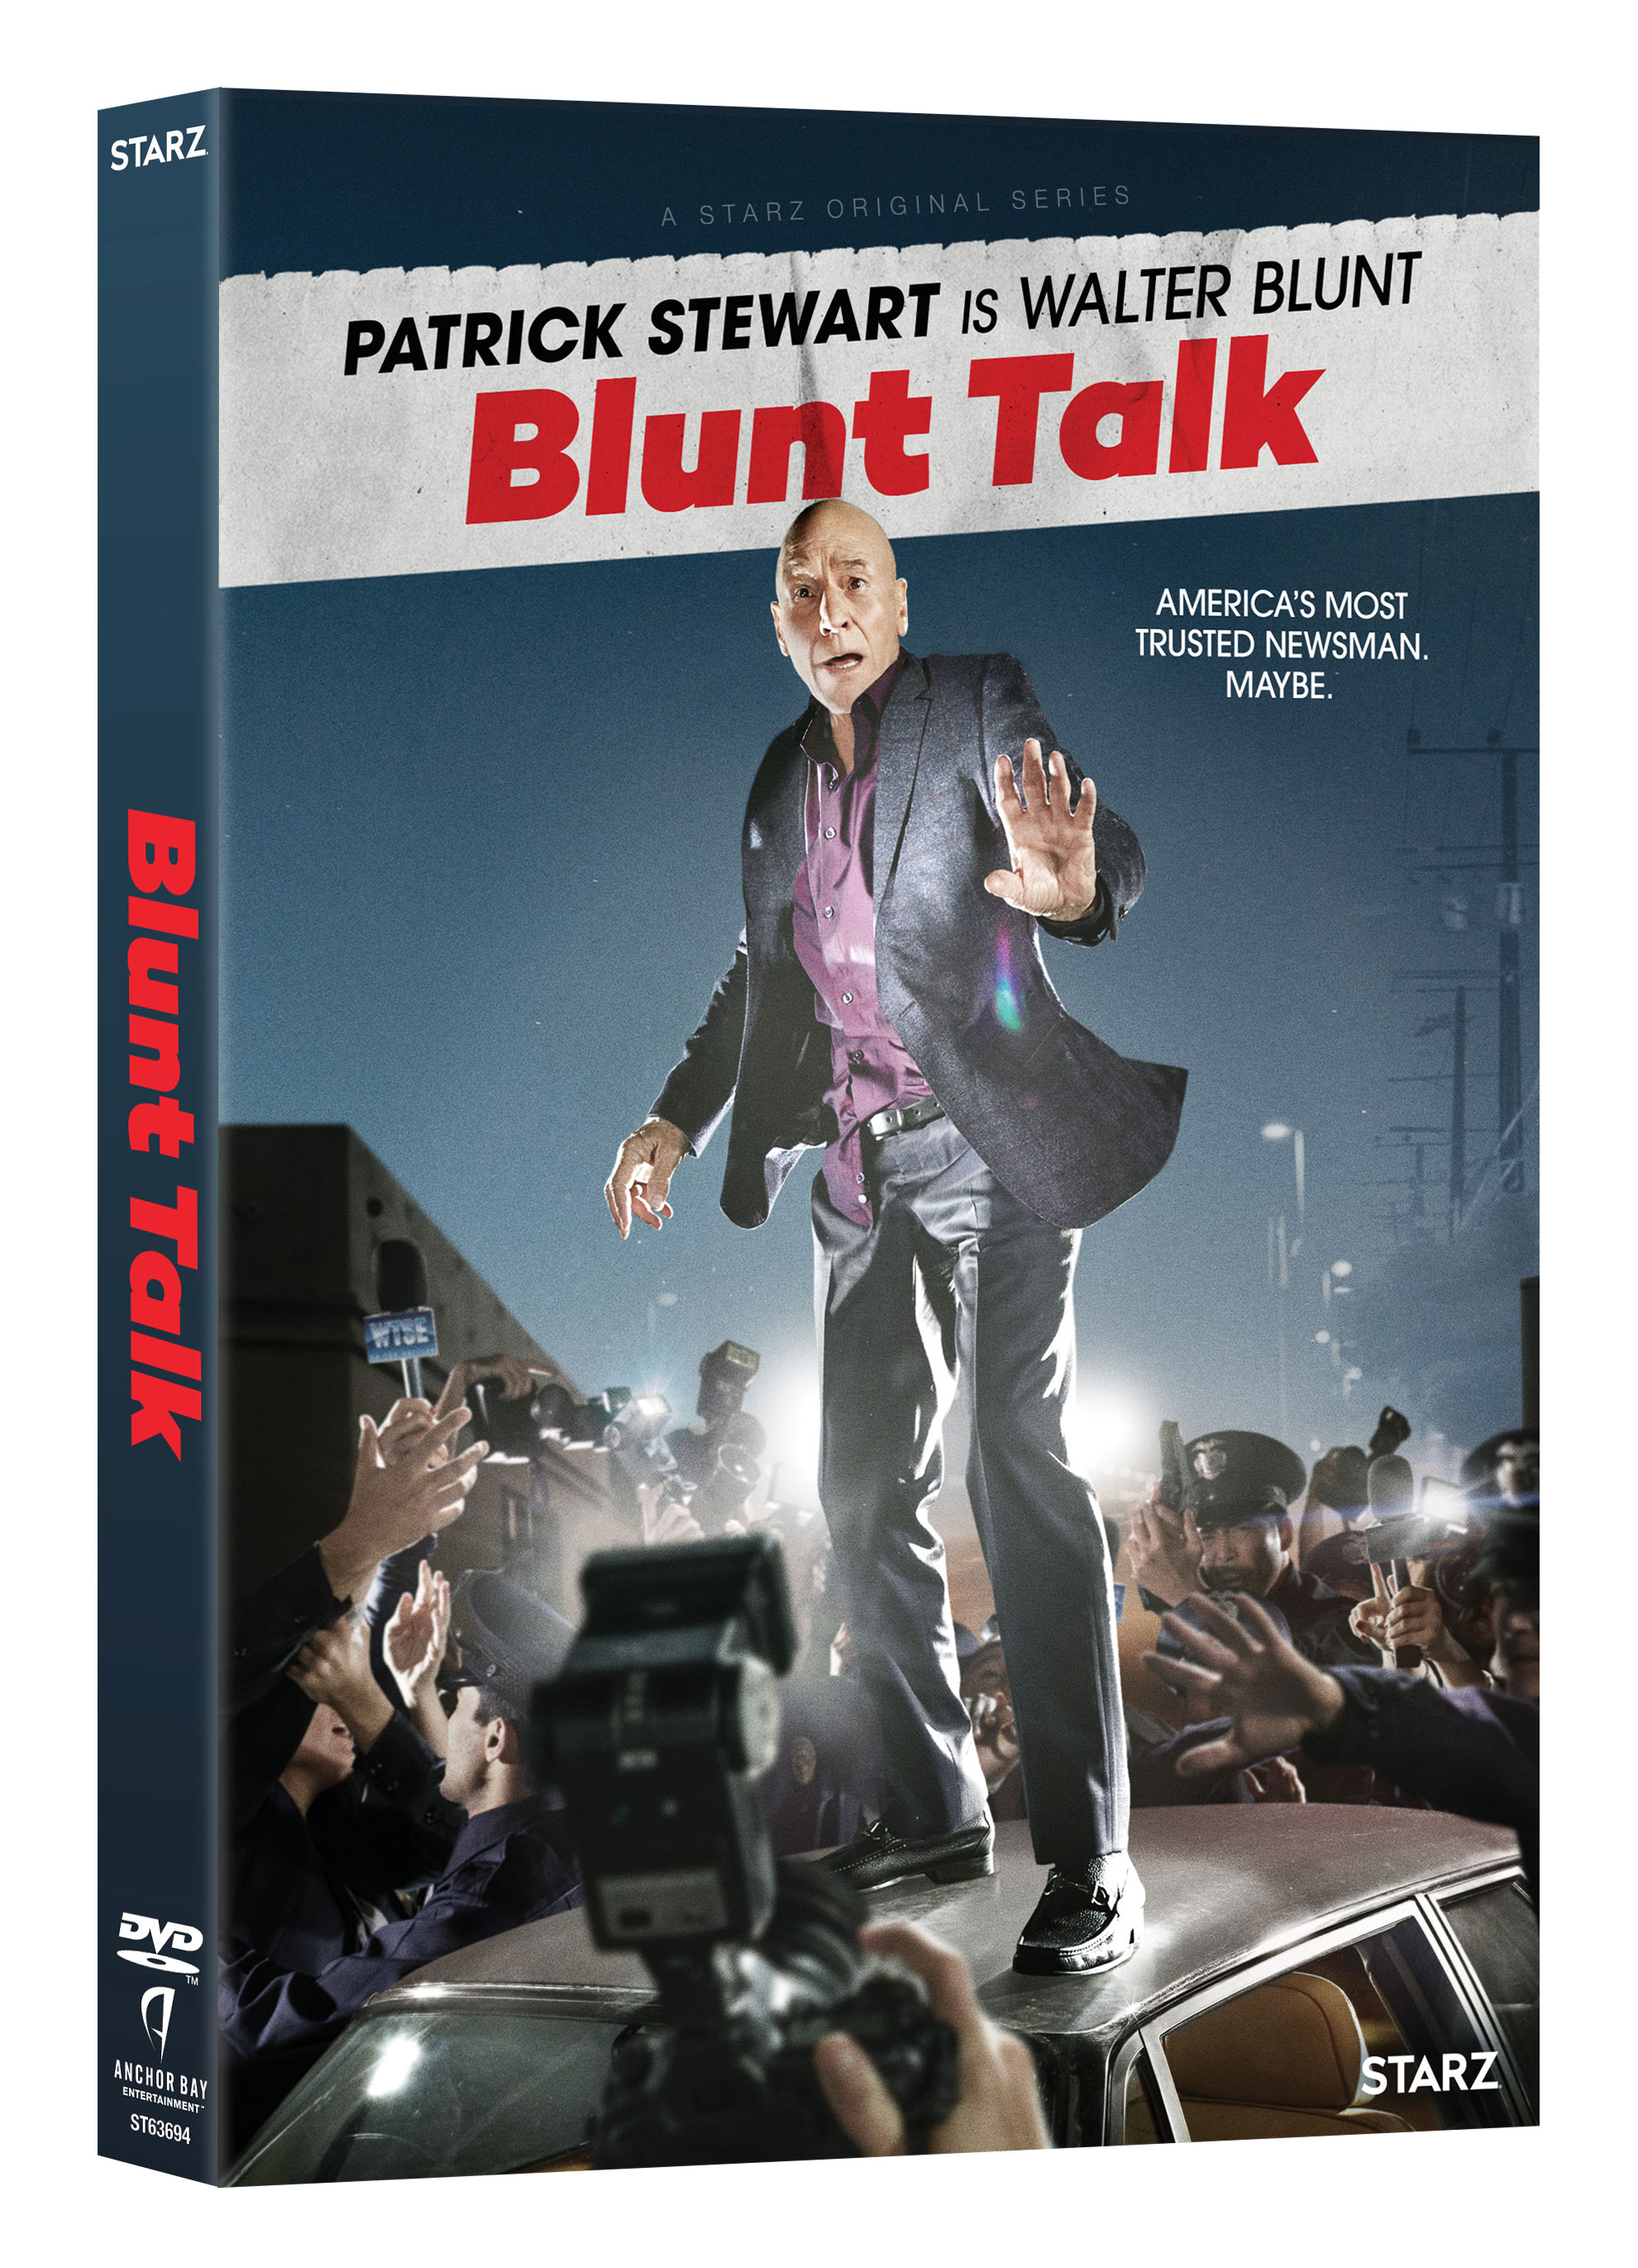 Blunt Talk Season 1 DVD Giveaway Has Patrick Stewart Sharing Wisdom with American Audiences